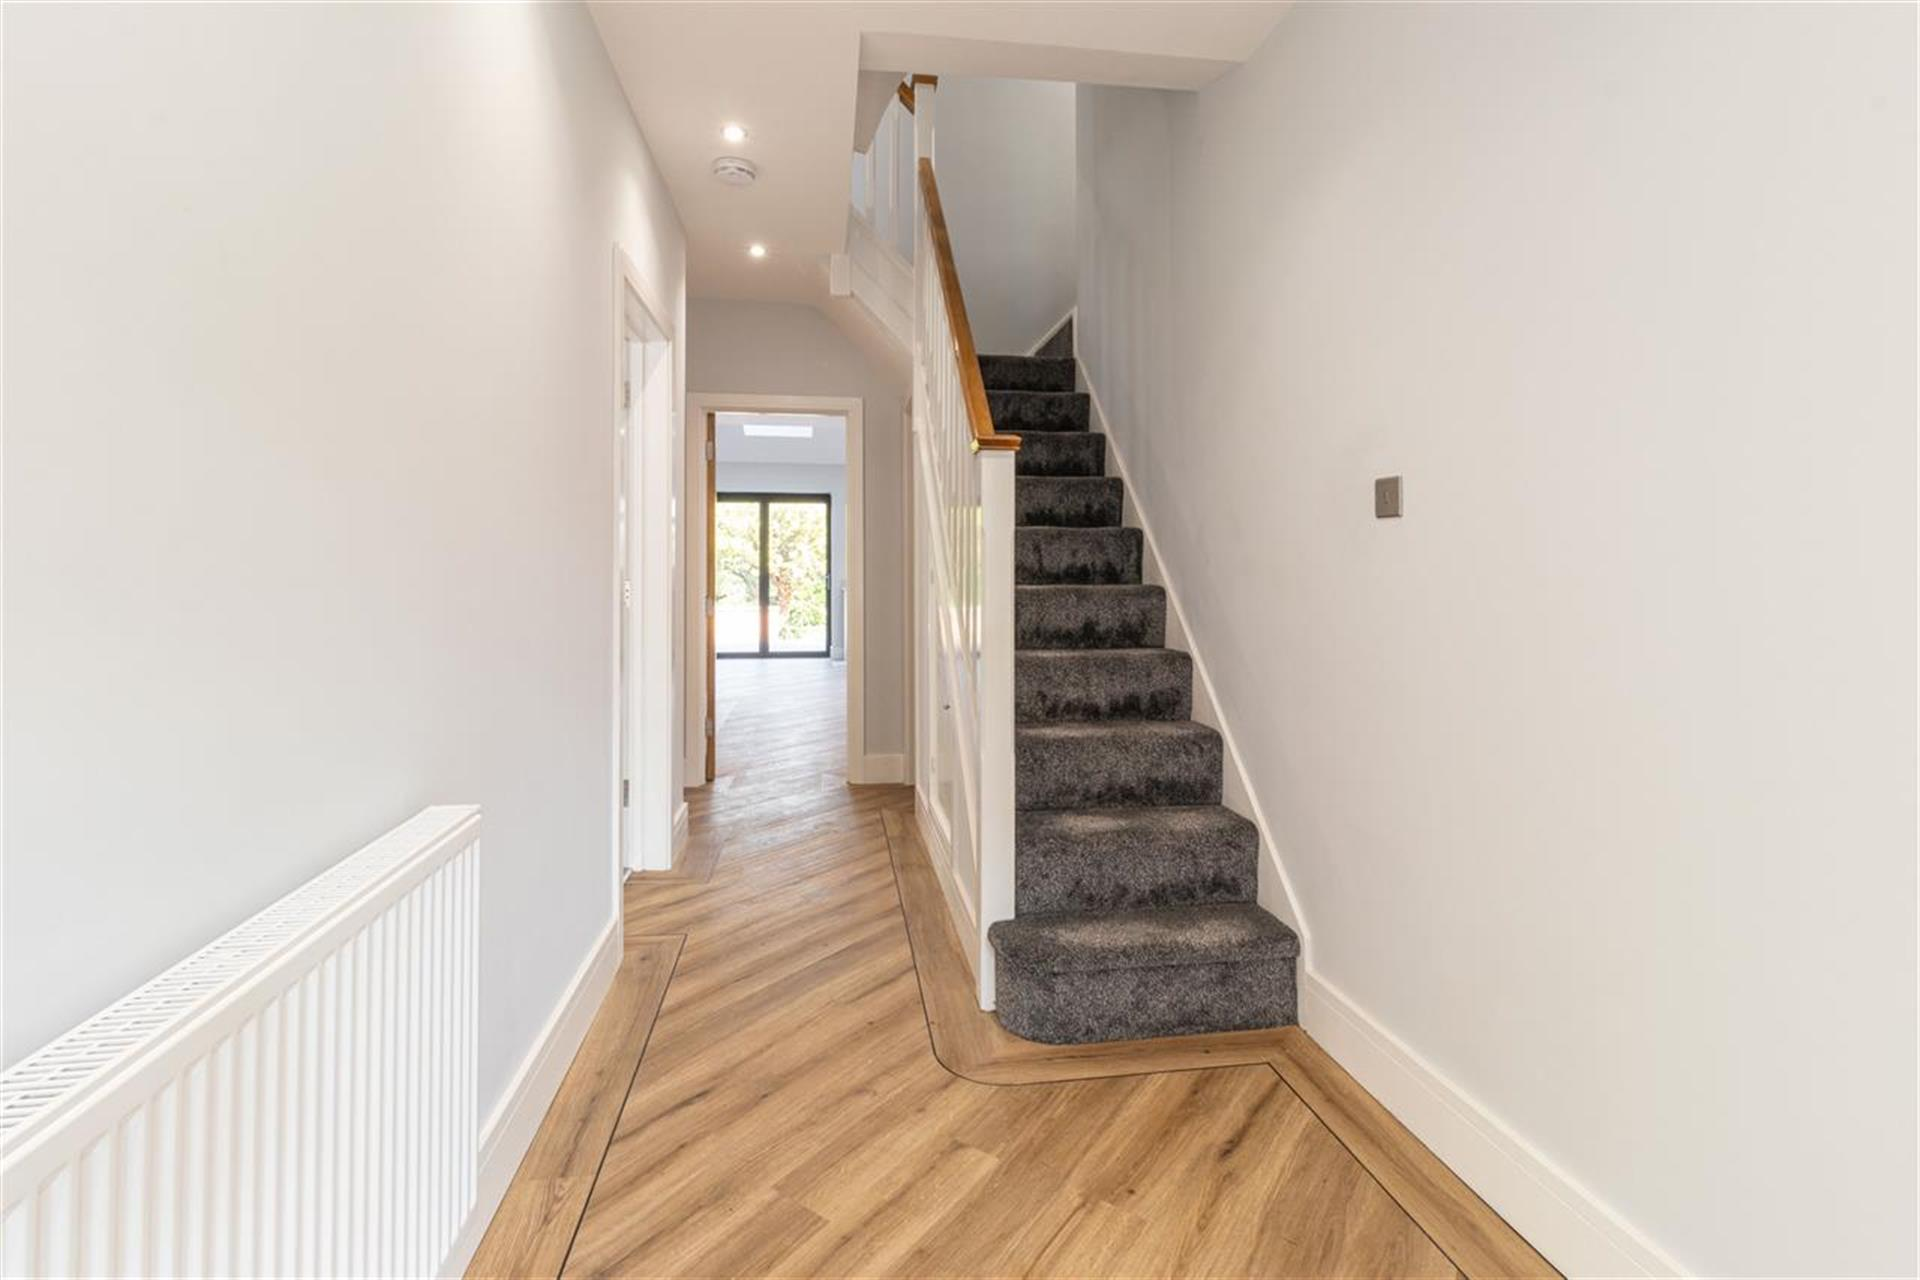 6 Bedroom Detached House For Sale - Spacious Entrance Hall